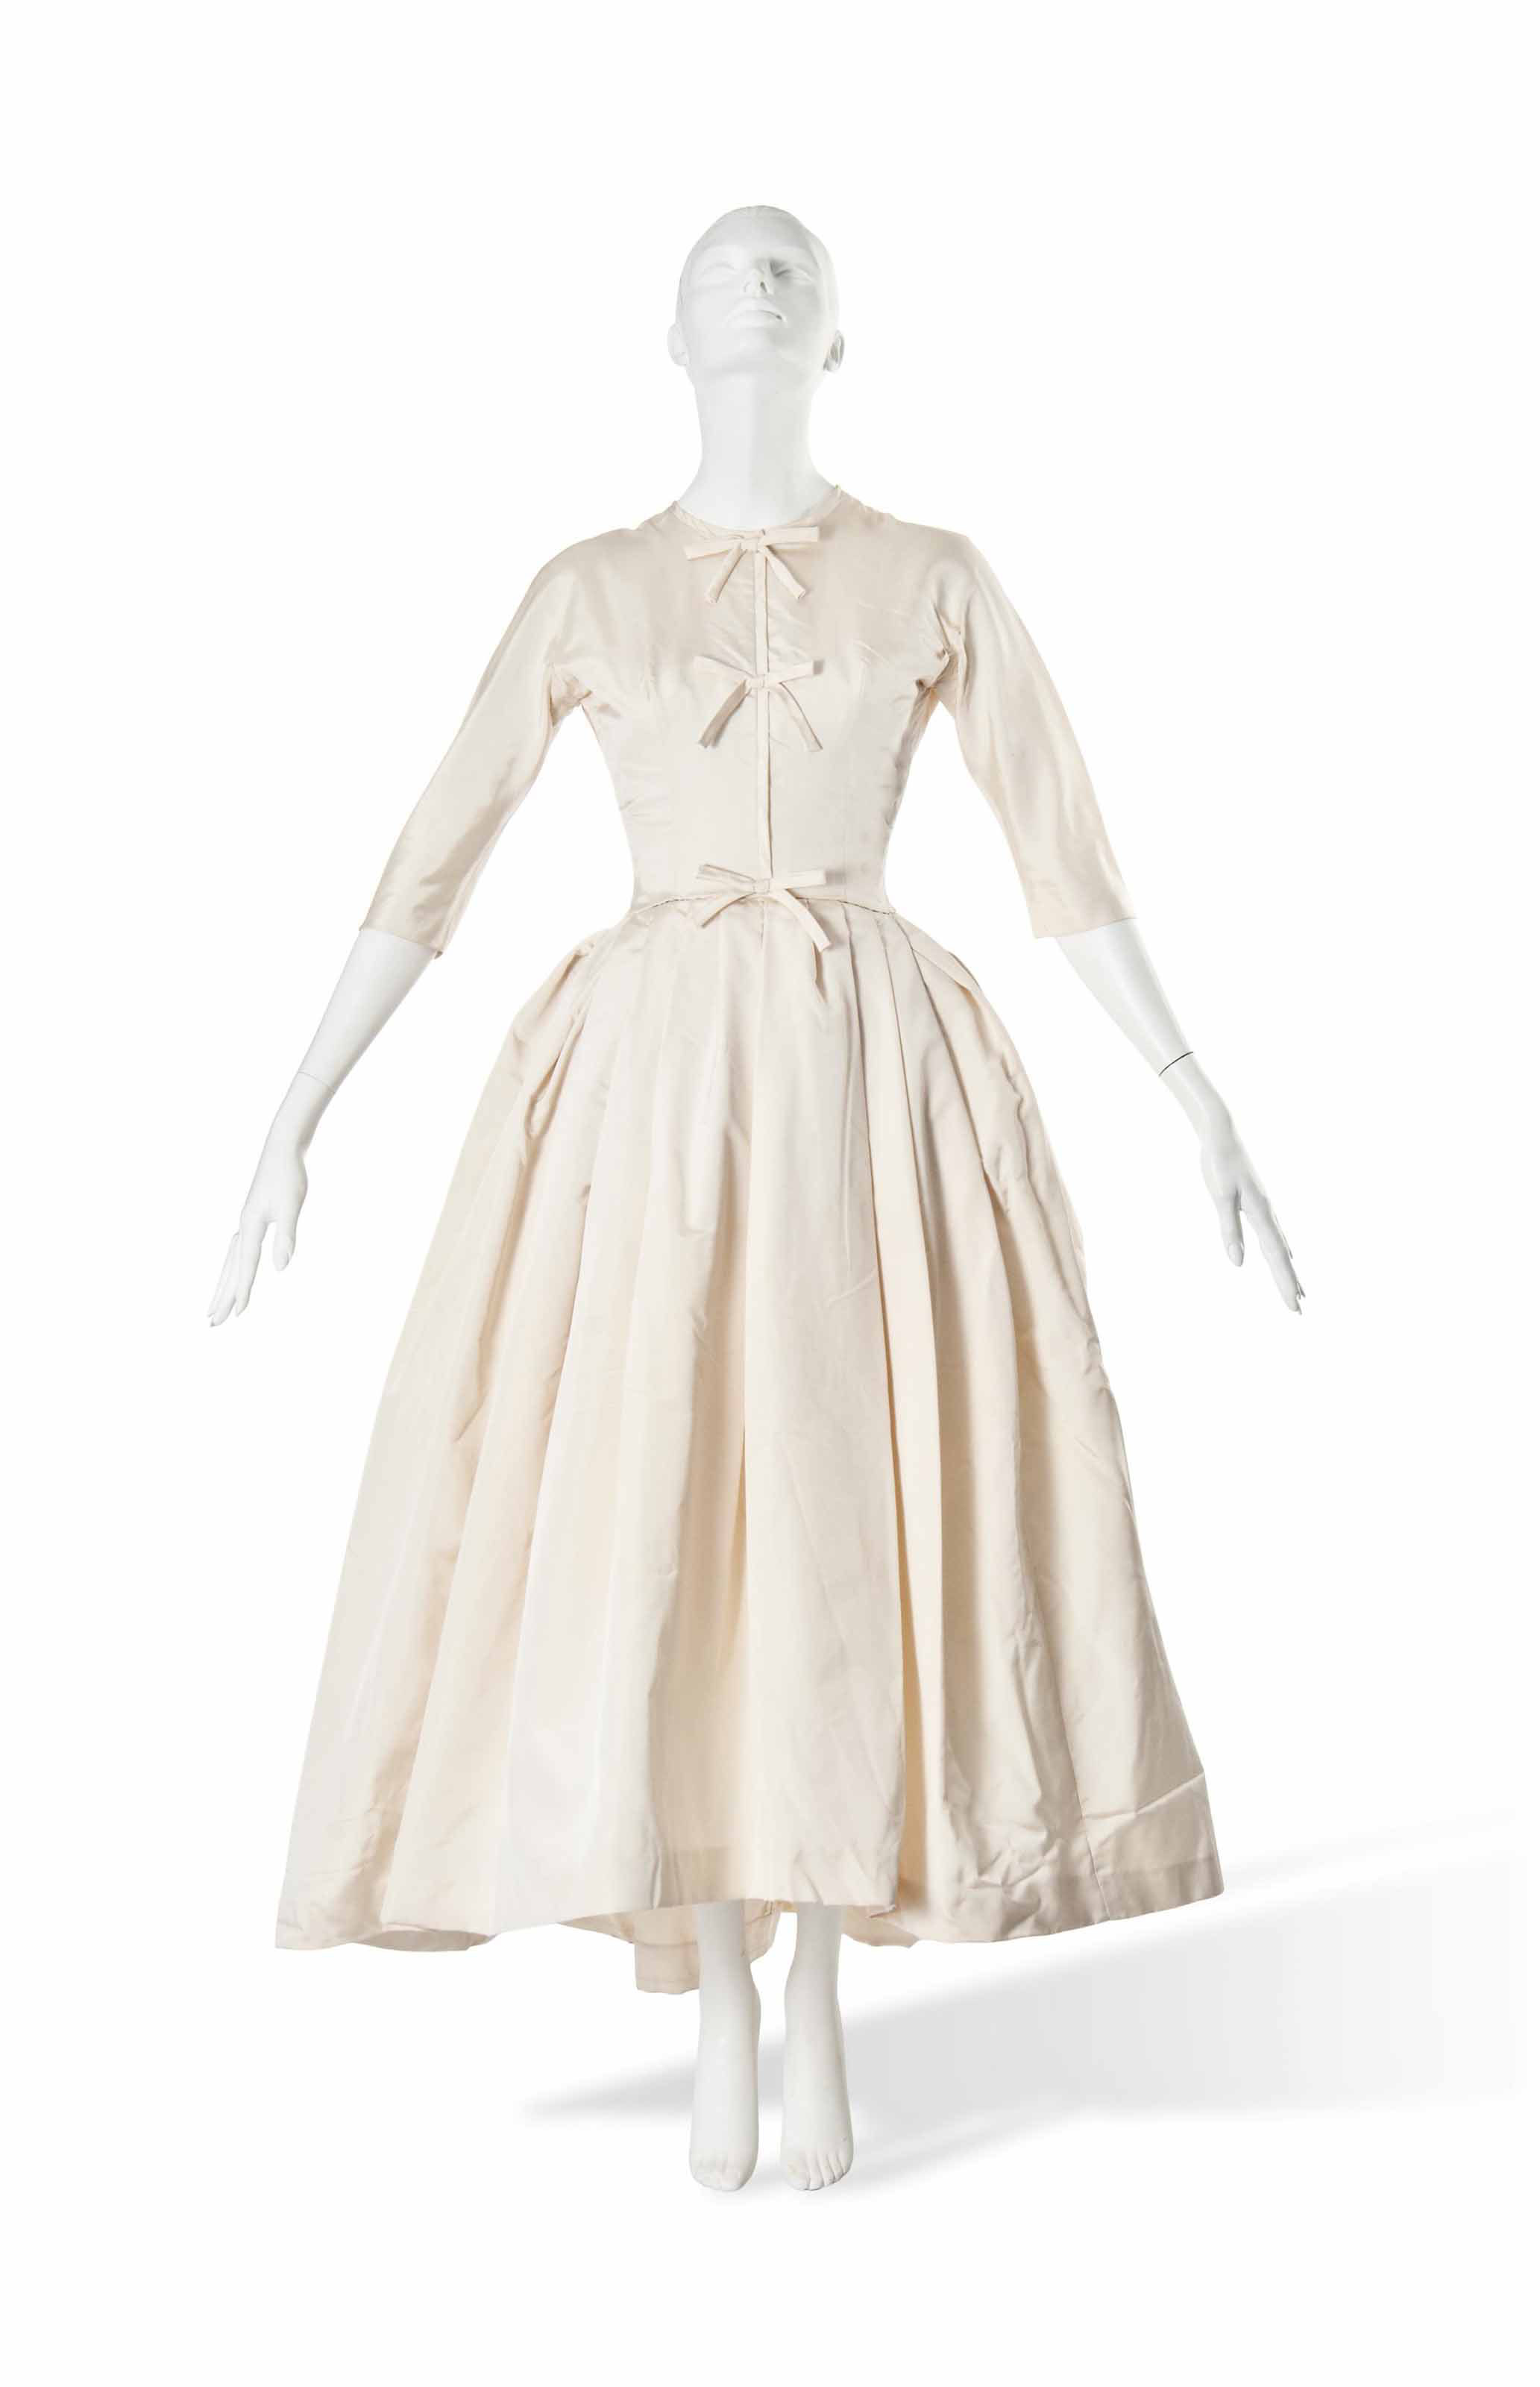 A Christian Dior Wedding Dress 1950s 20th Century Dress